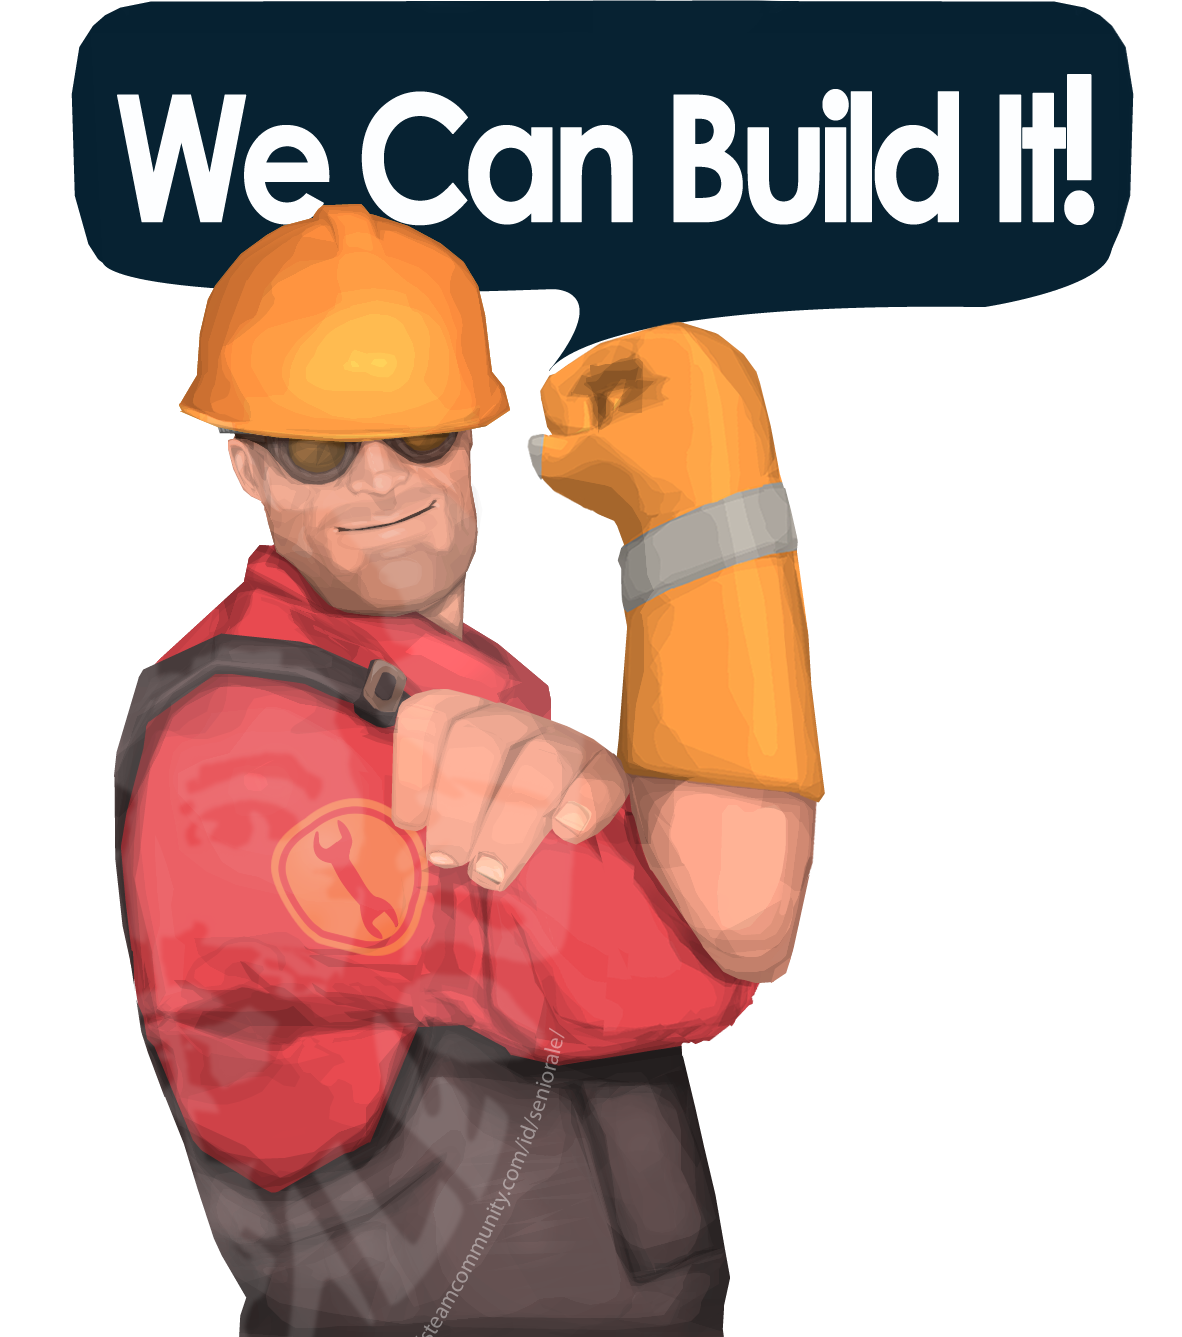 engie_no_bg.fw.png